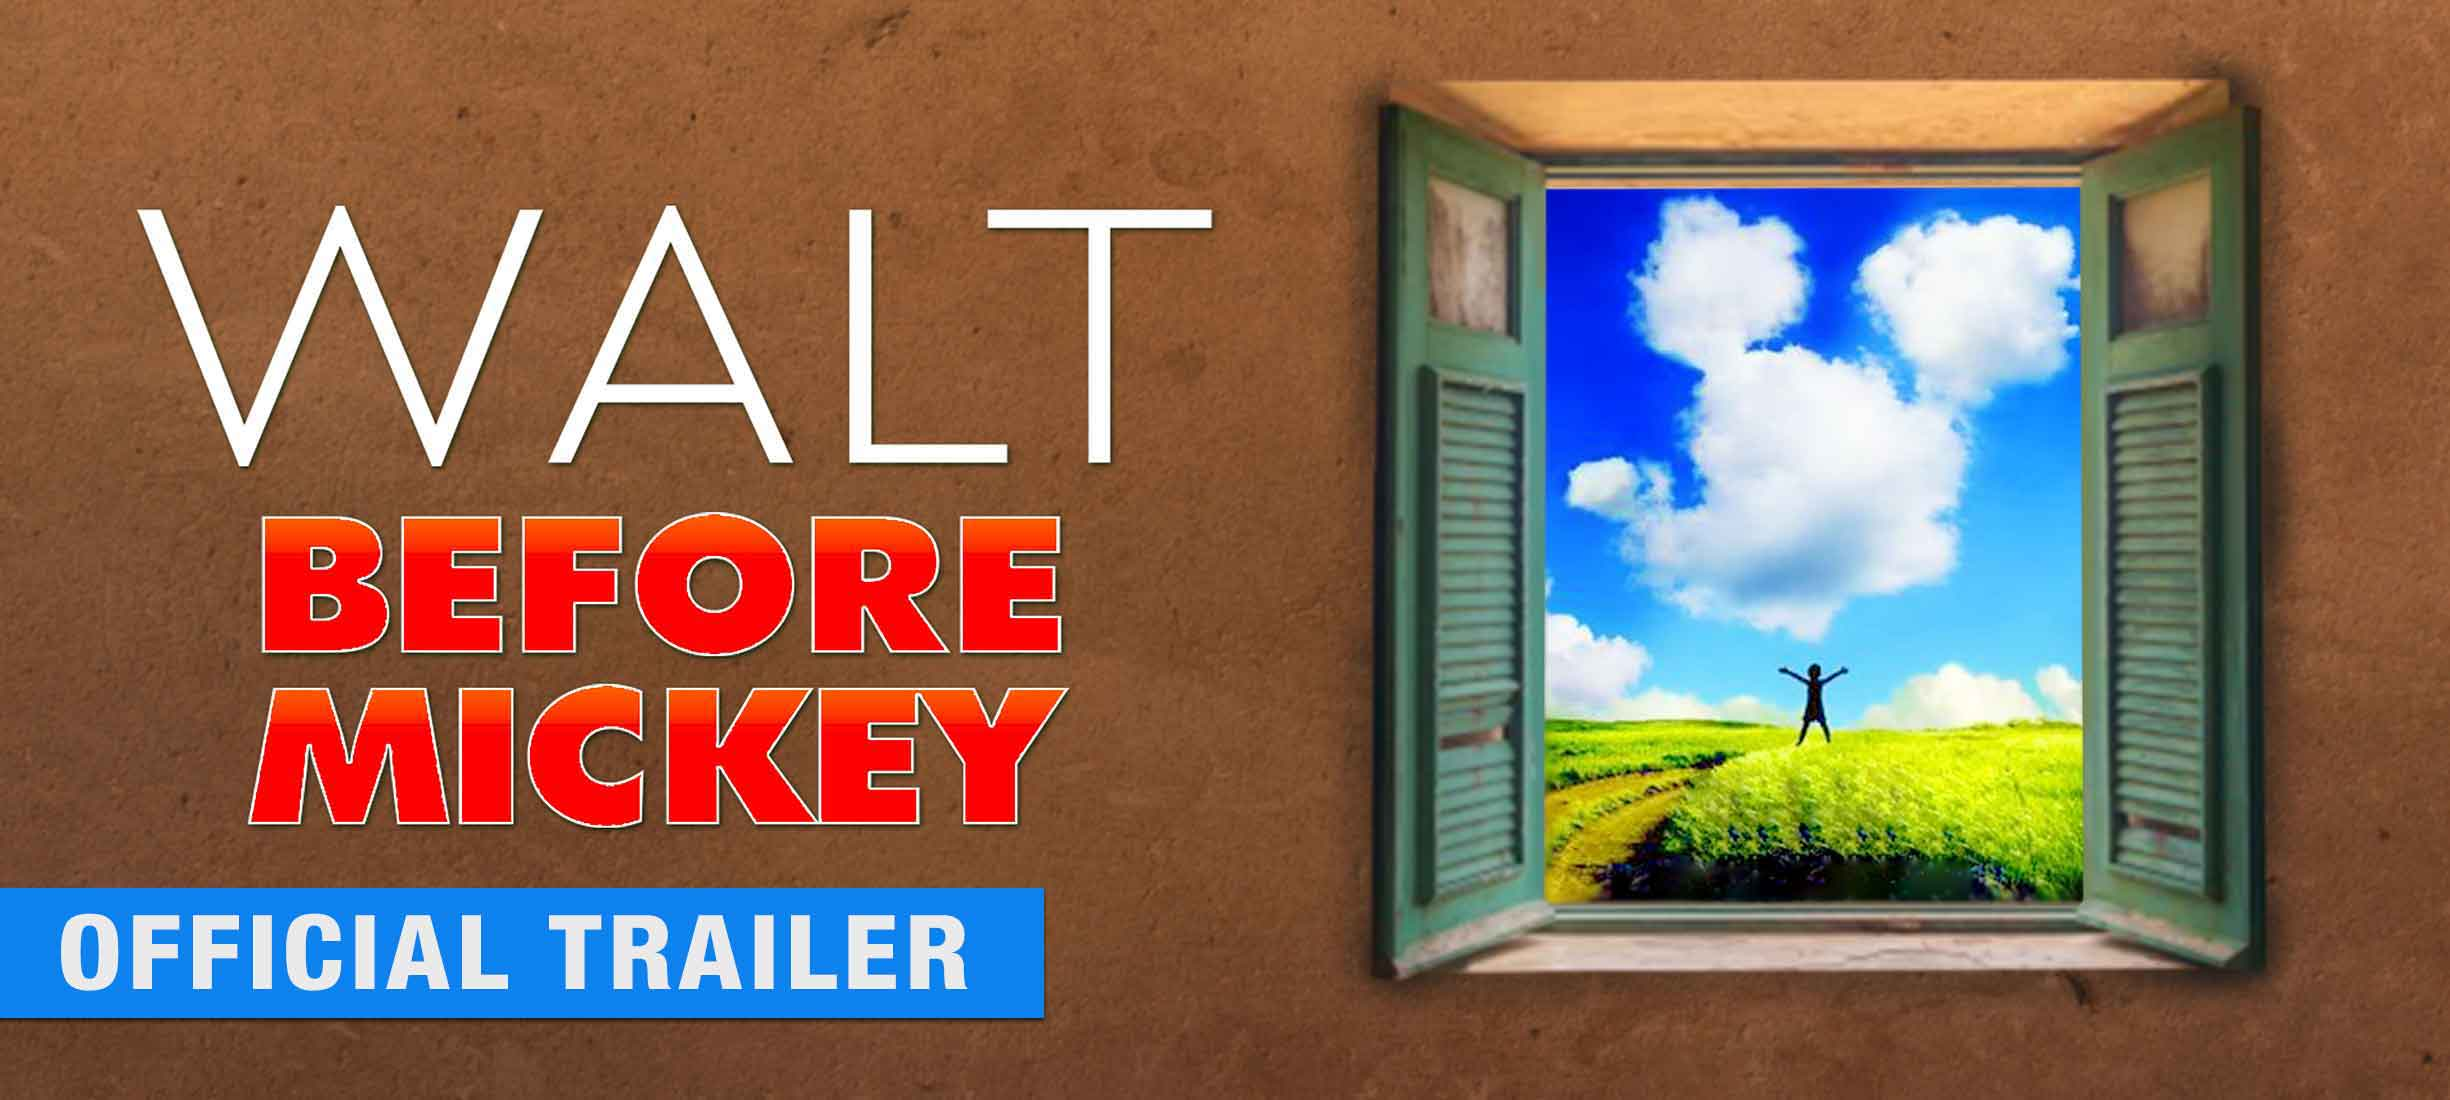 Walt Before Mickey - Official Trailer